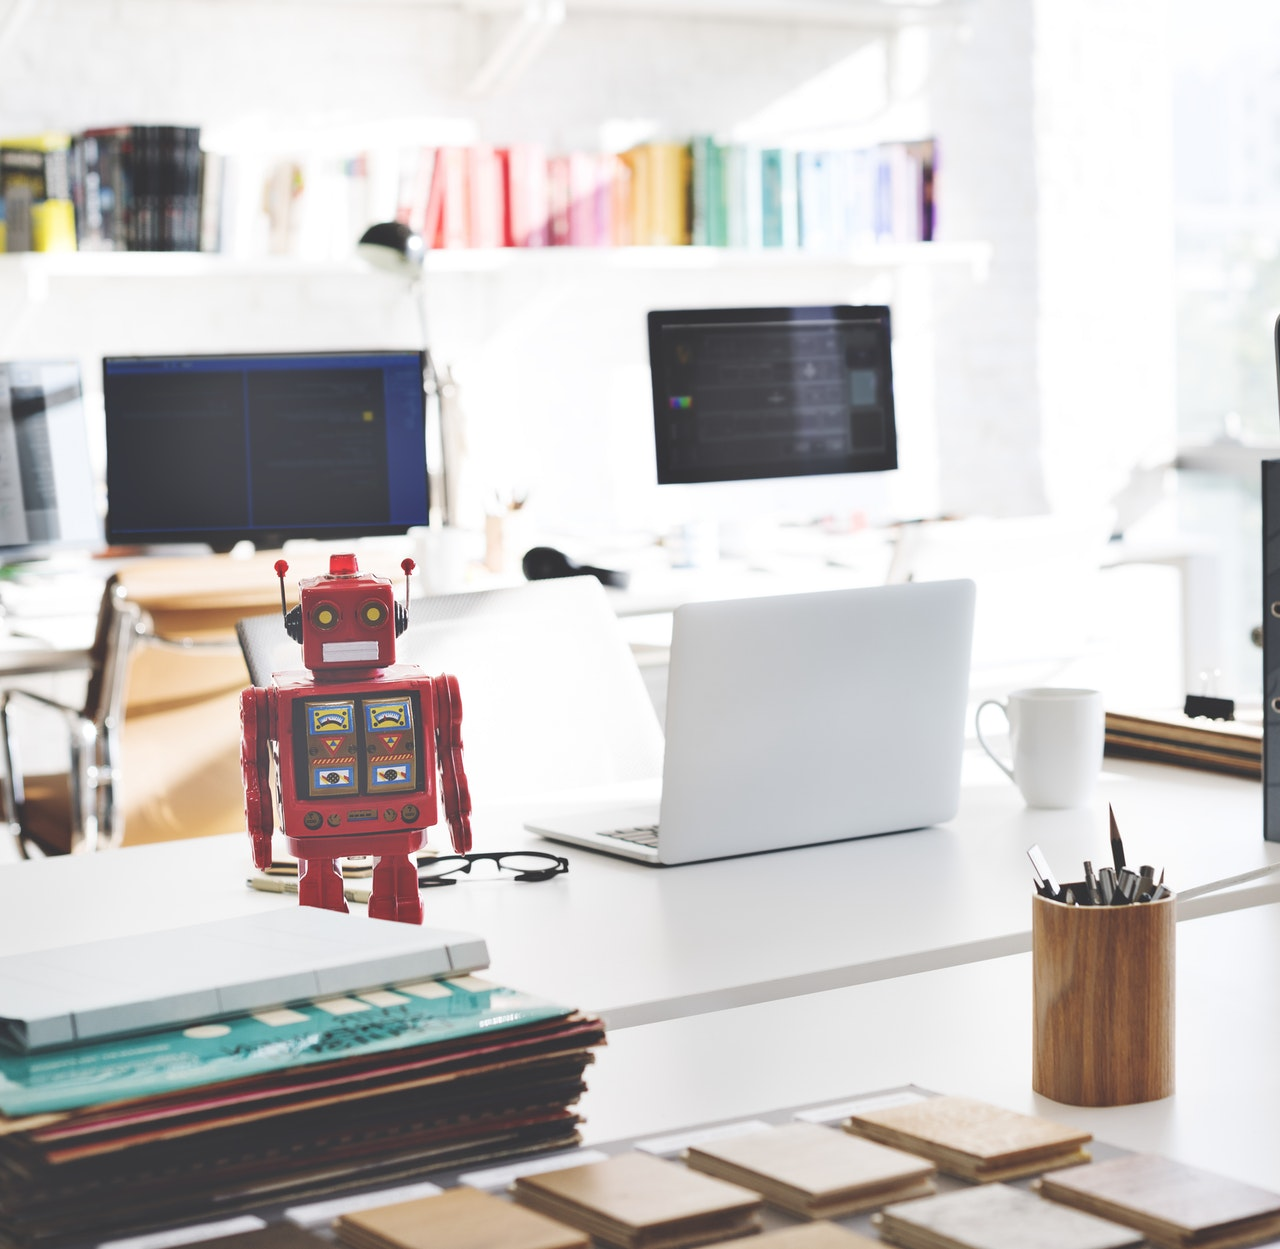 photo of a desk with two laptops and a robot to represent artificial intelligence